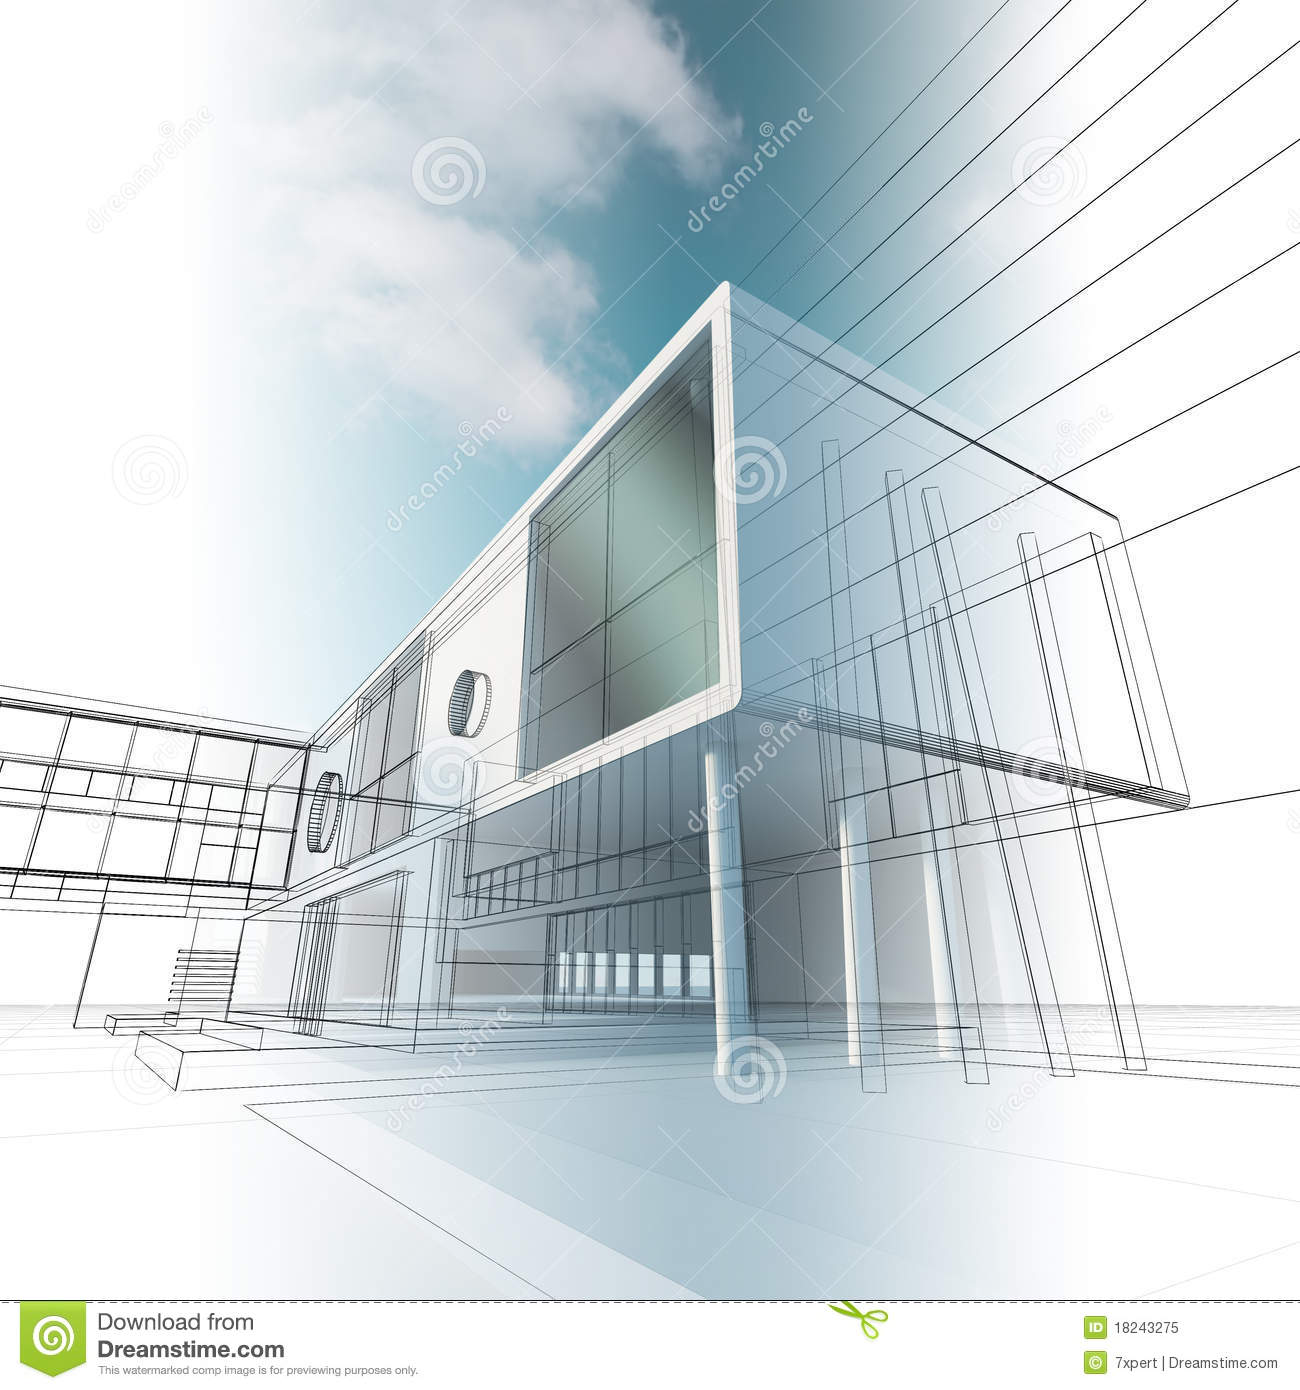 Building concept drawing royalty free stock photo image for Concept building